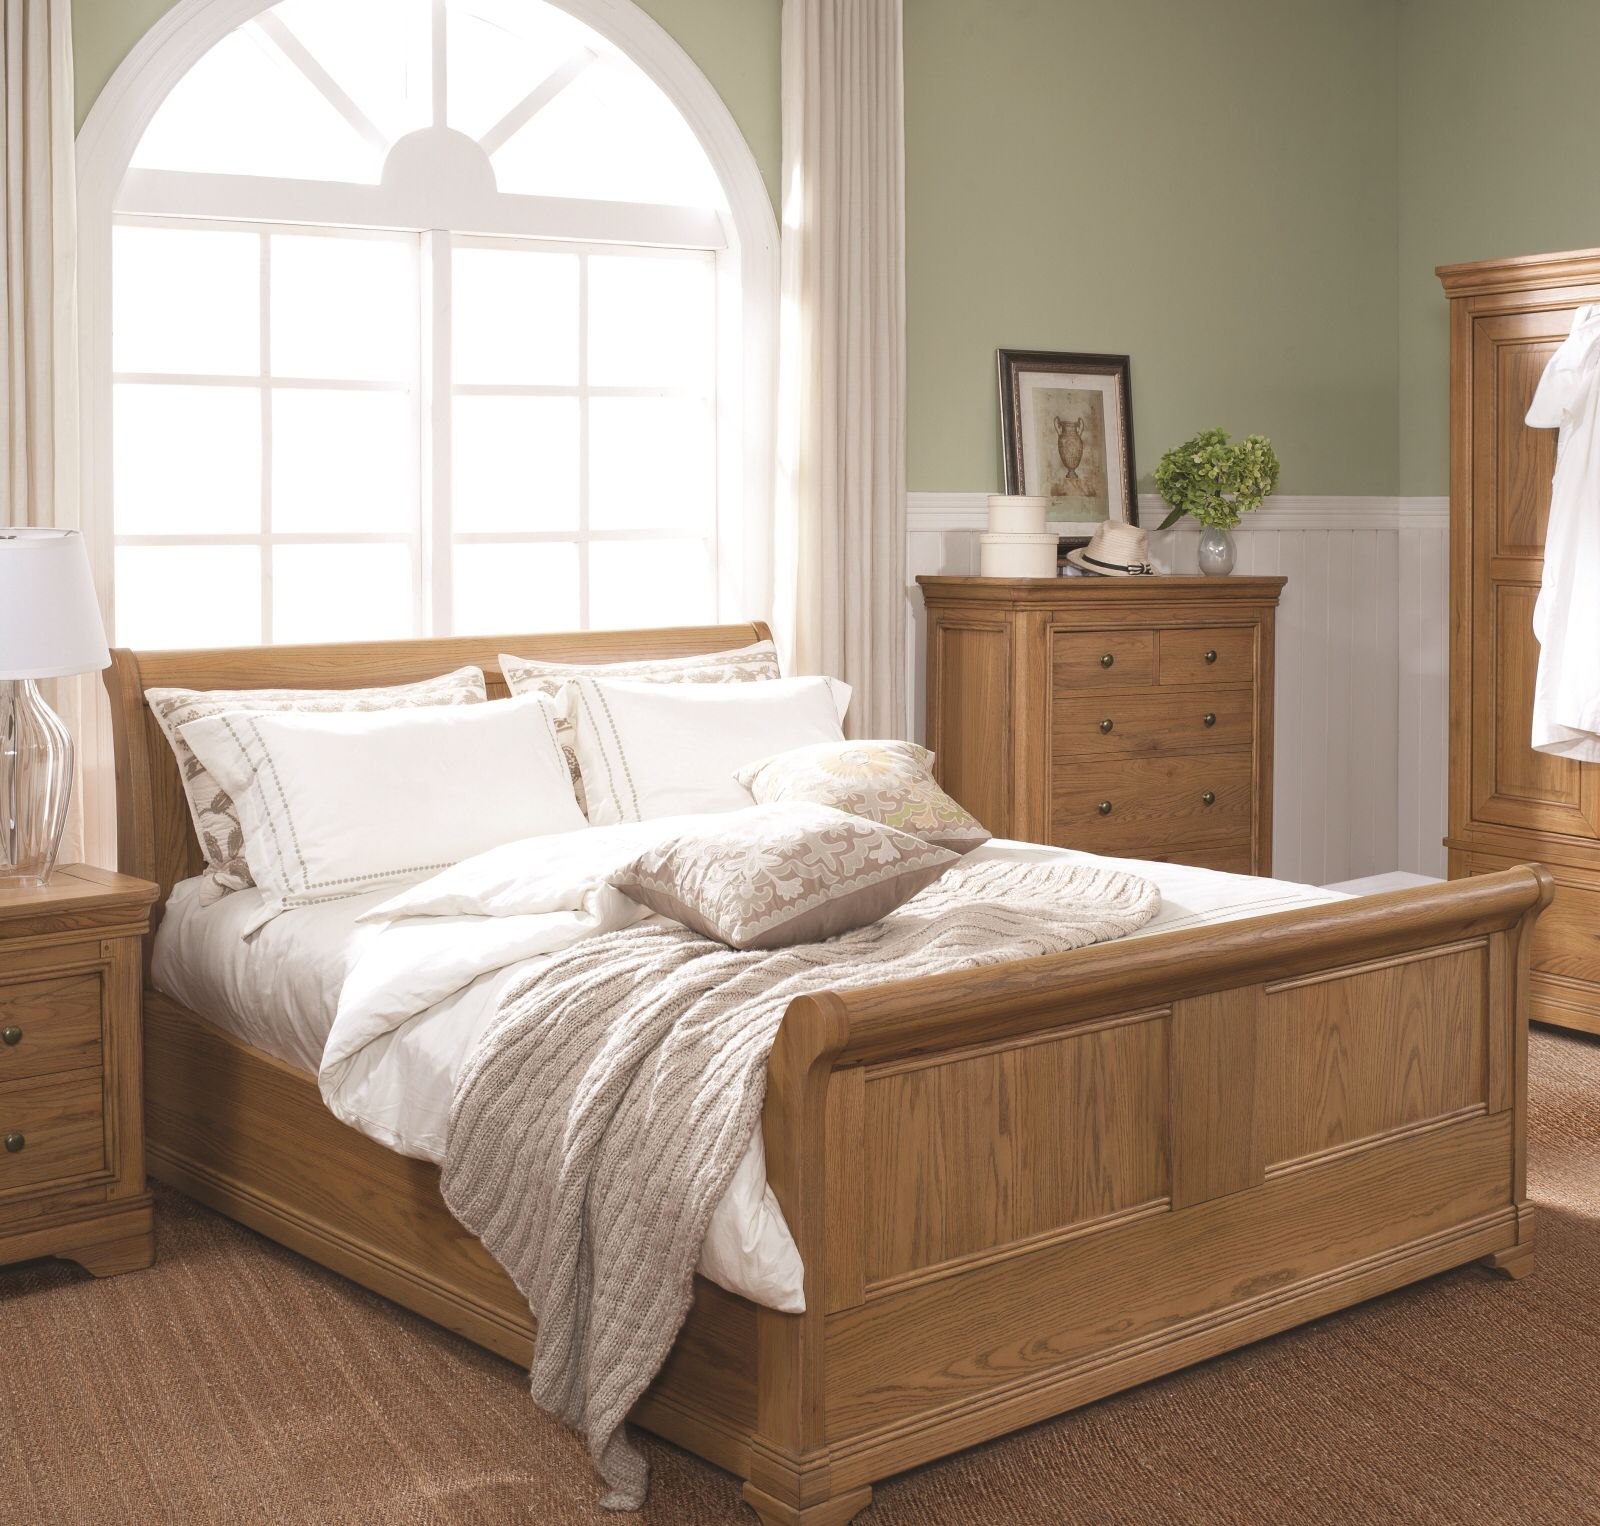 Highly Sprung Bedroom Furniture Trade Prices 2015 Oak Bedroom Furniture Sets Oak Bedroom Wooden Bedroom Furniture